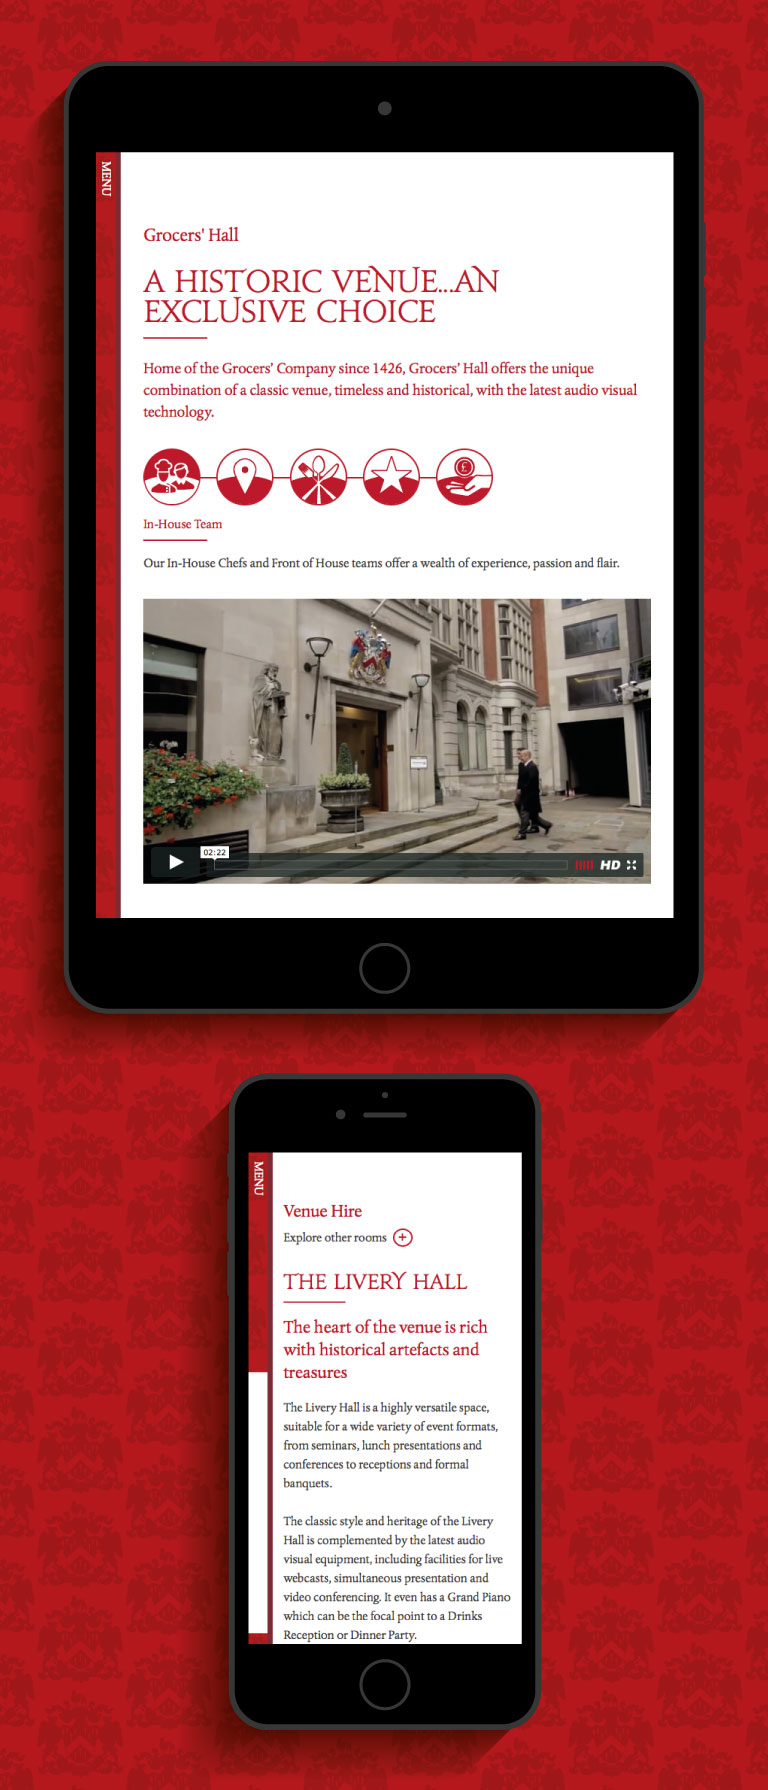 Grocers' Hall website on an iPad and iPhone - mobile